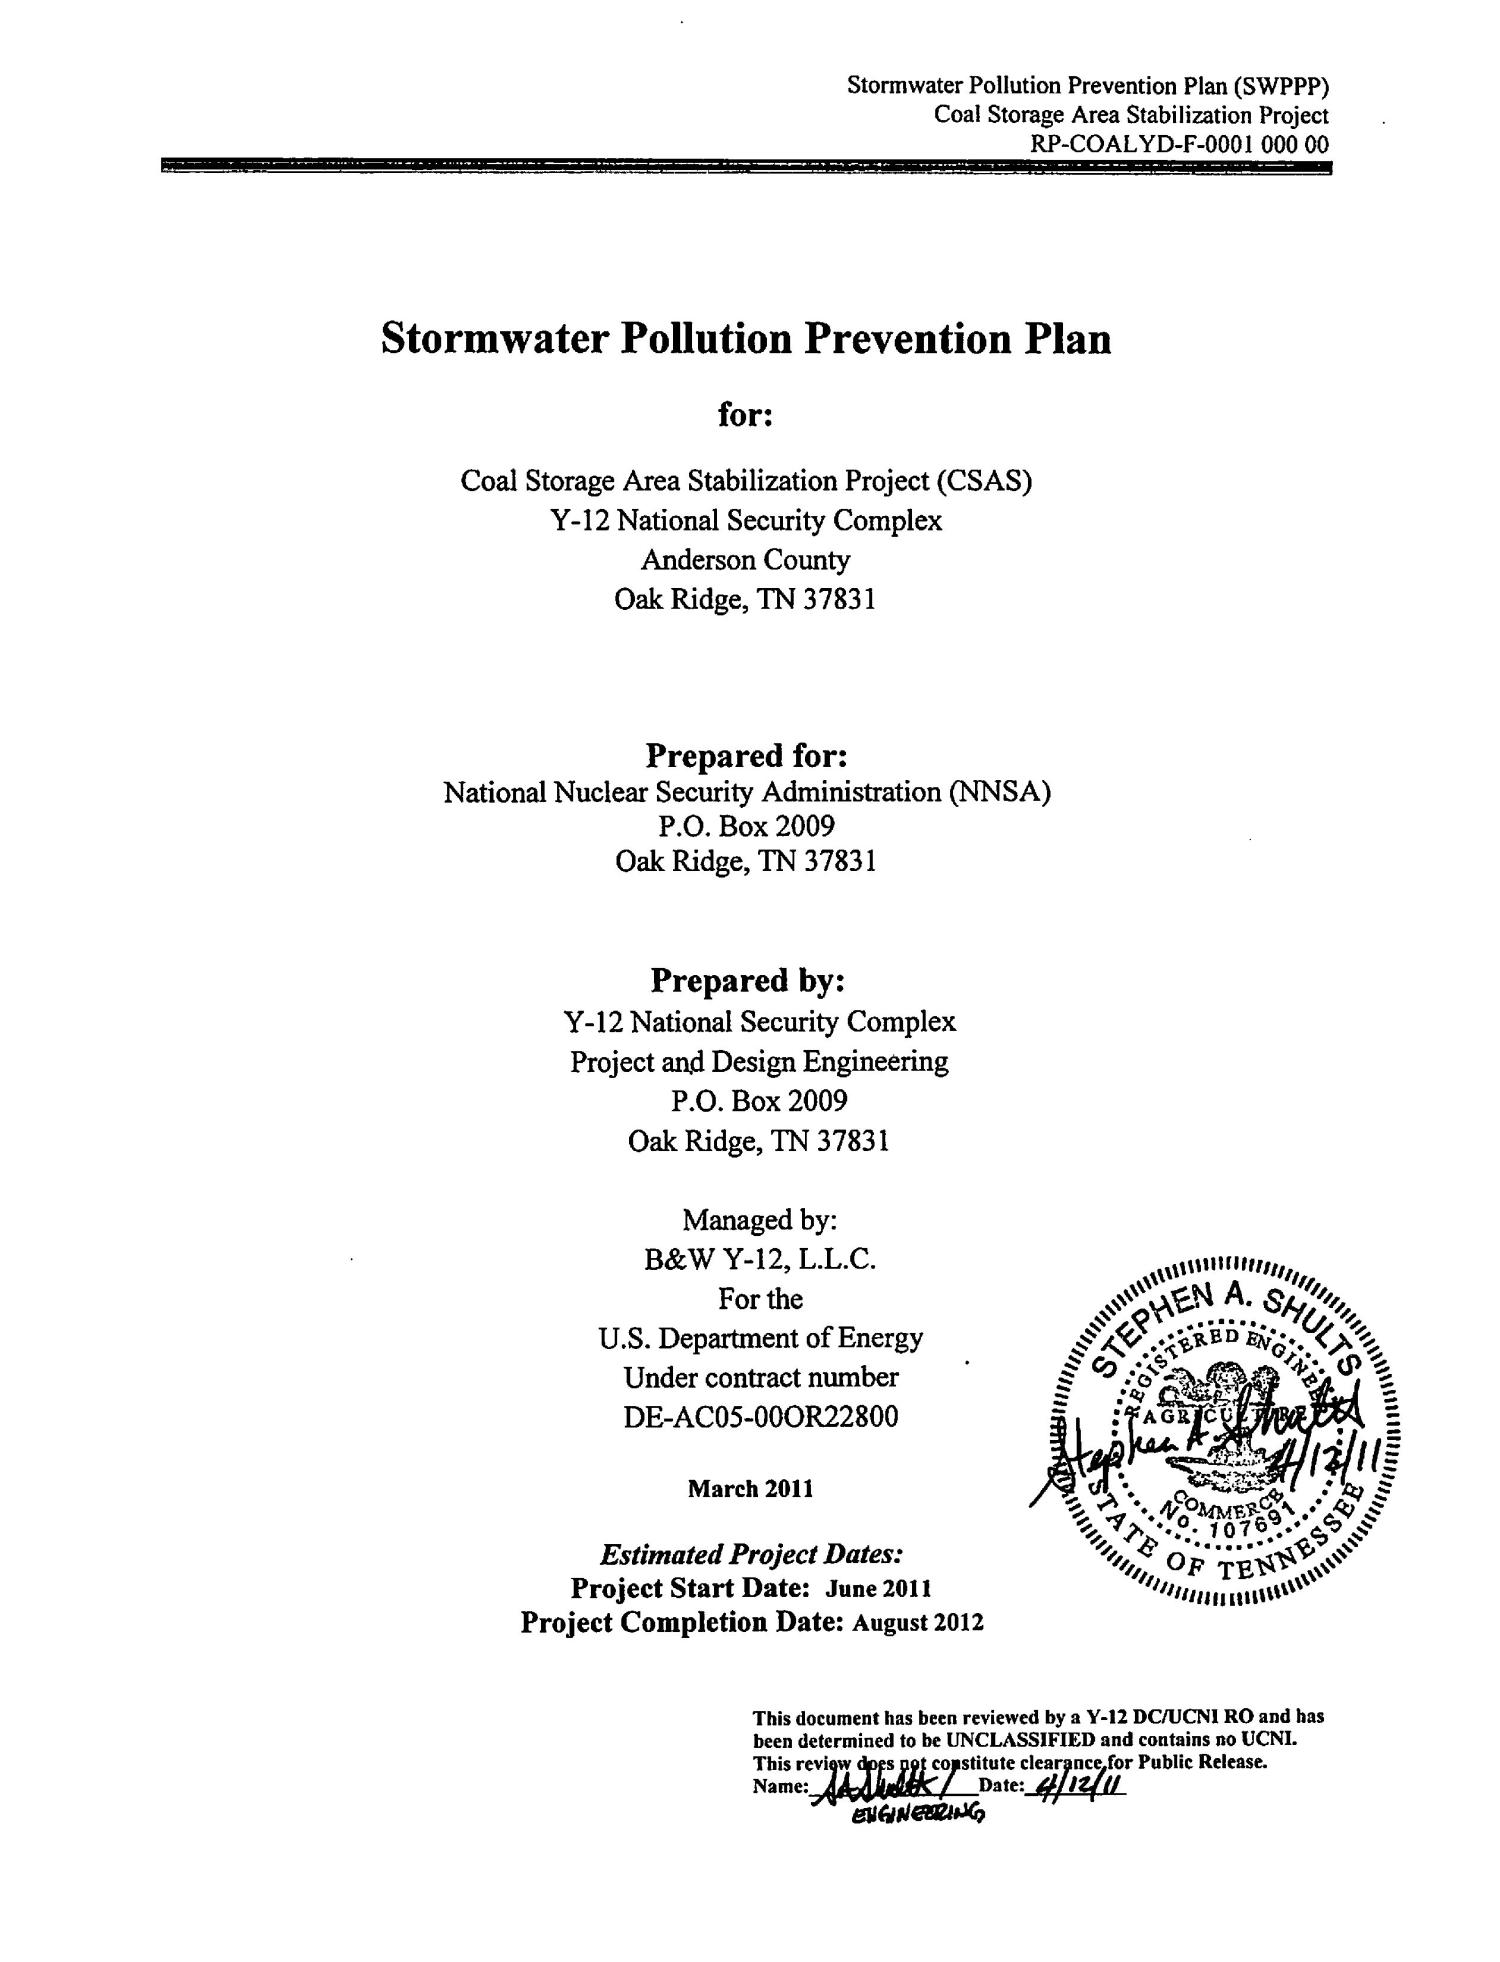 Stormwater Pollution Prevention Plan (SWPPP) For Coal Storage Area  Stabilization Project Digital Library